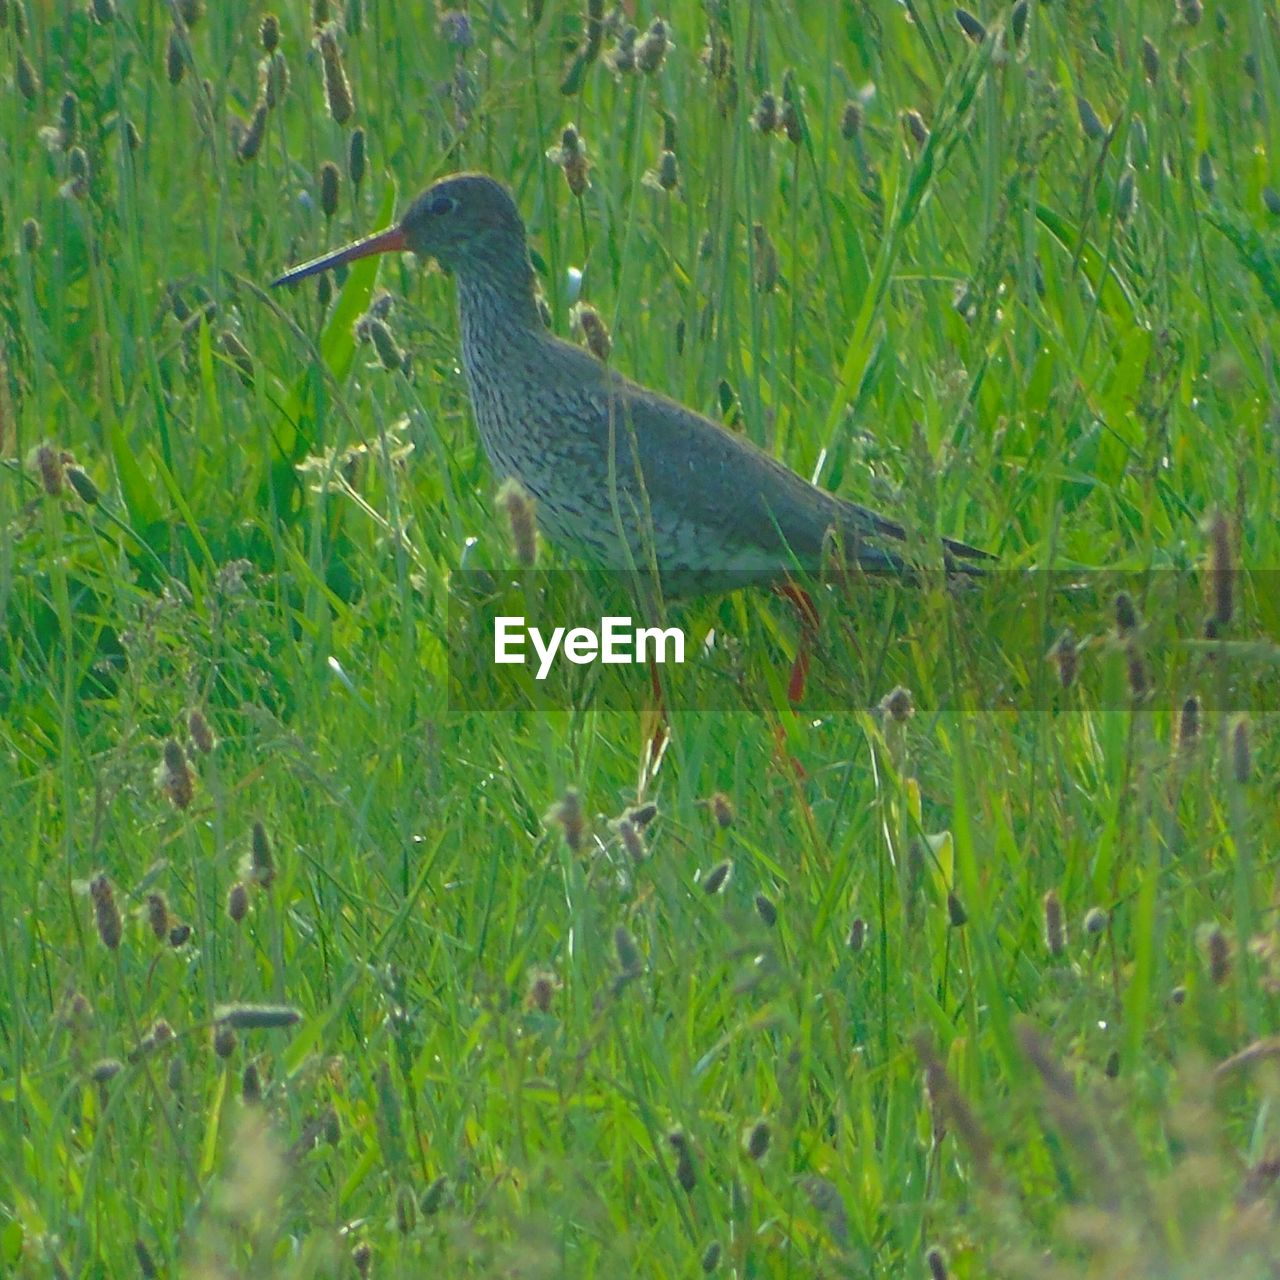 grass, one animal, nature, field, green color, animal themes, outdoors, day, no people, mammal, bird